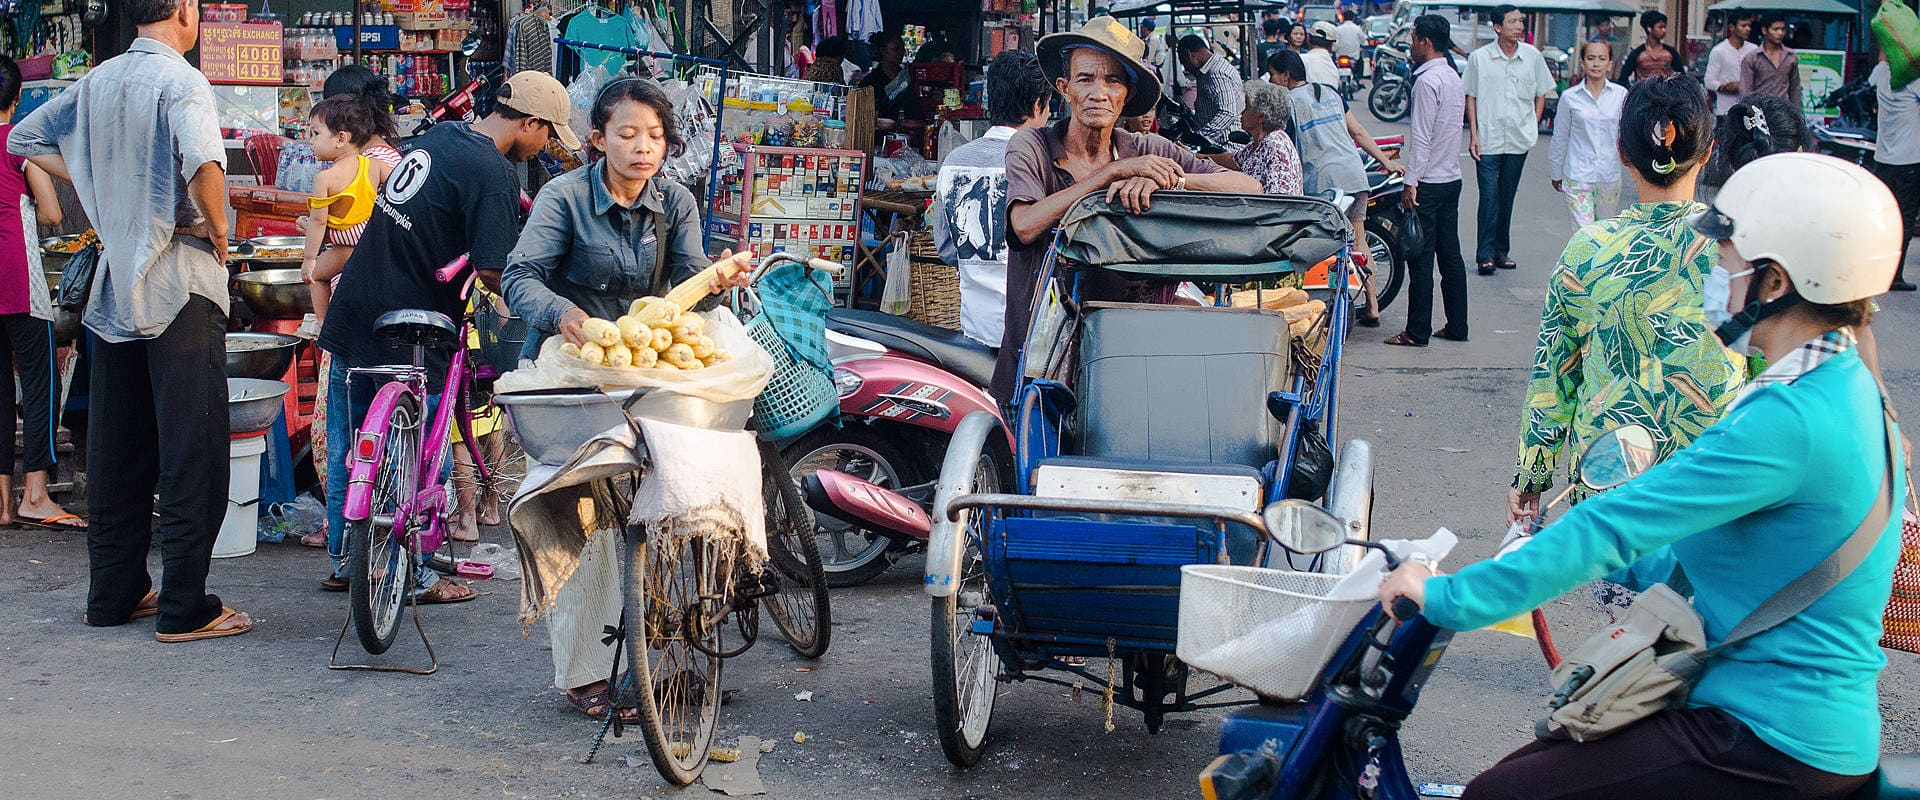 The Grantourismo Travels Guide to Phnom Penh, Cambodia.